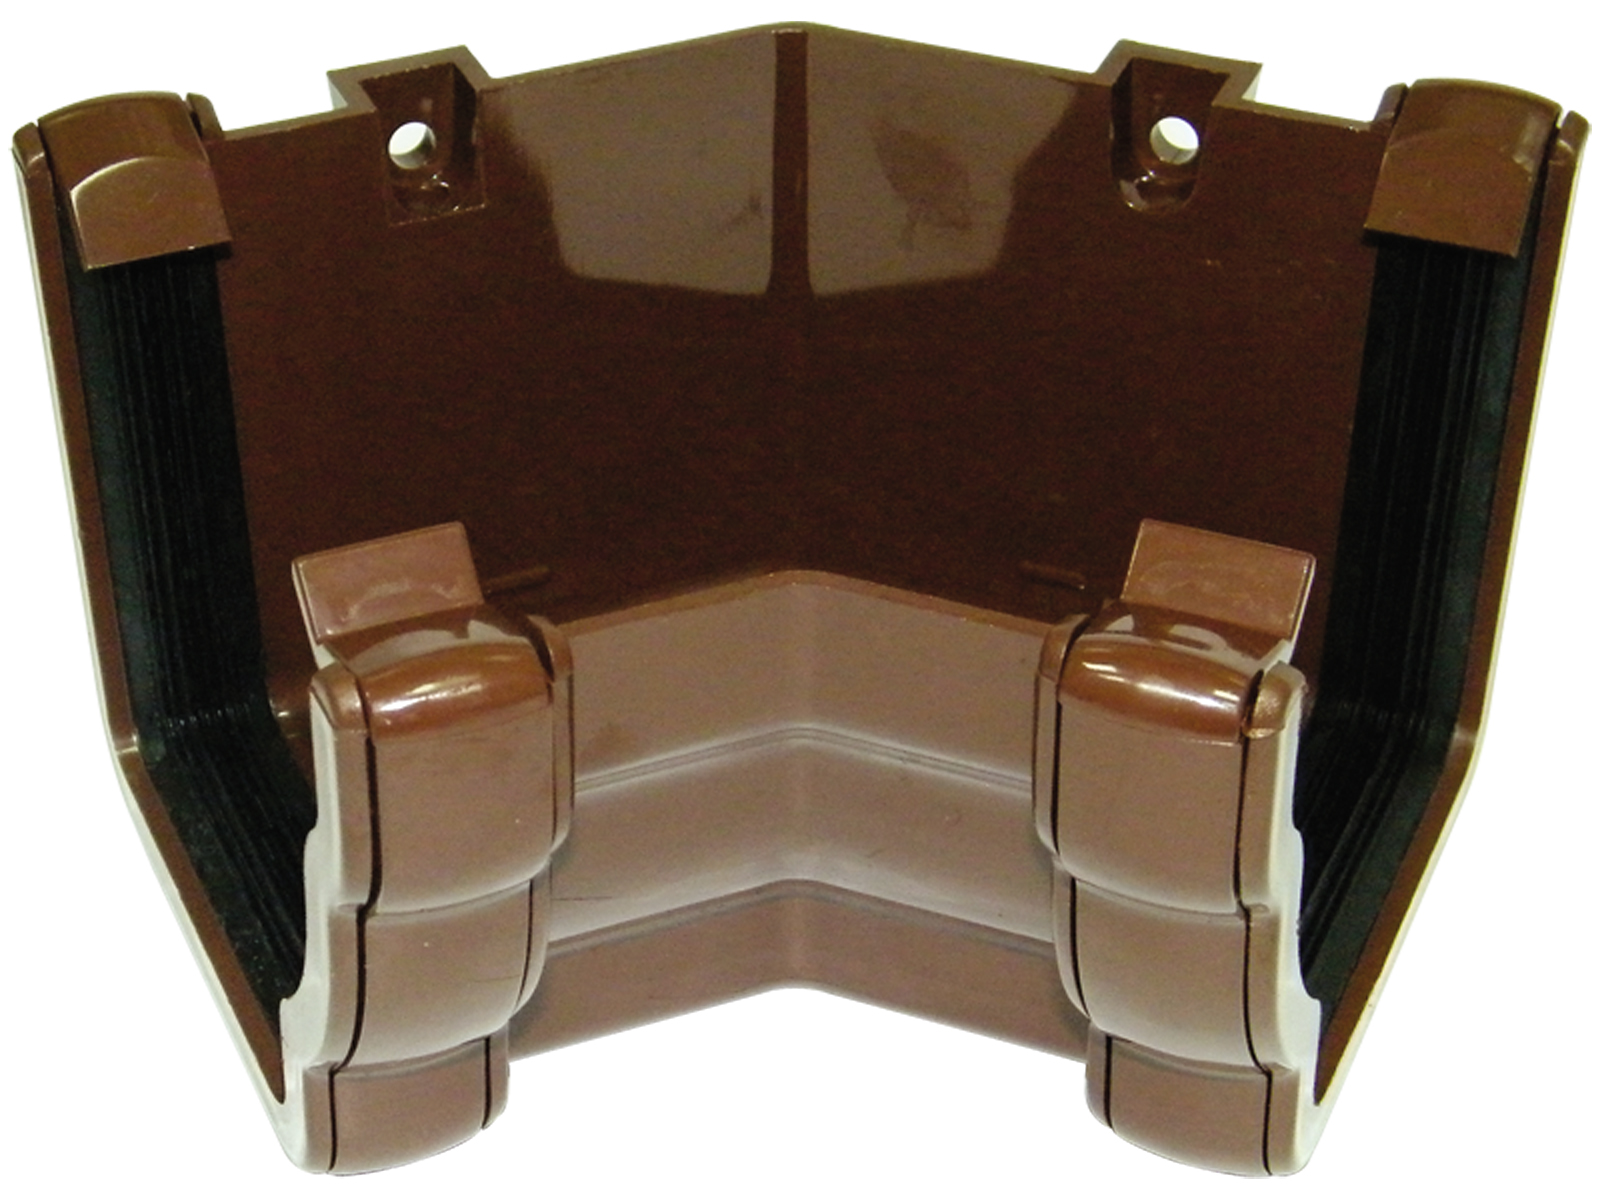 FLOPLAST NIAGARA - RAN3 135* INTERNAL ANGLE - BROWN